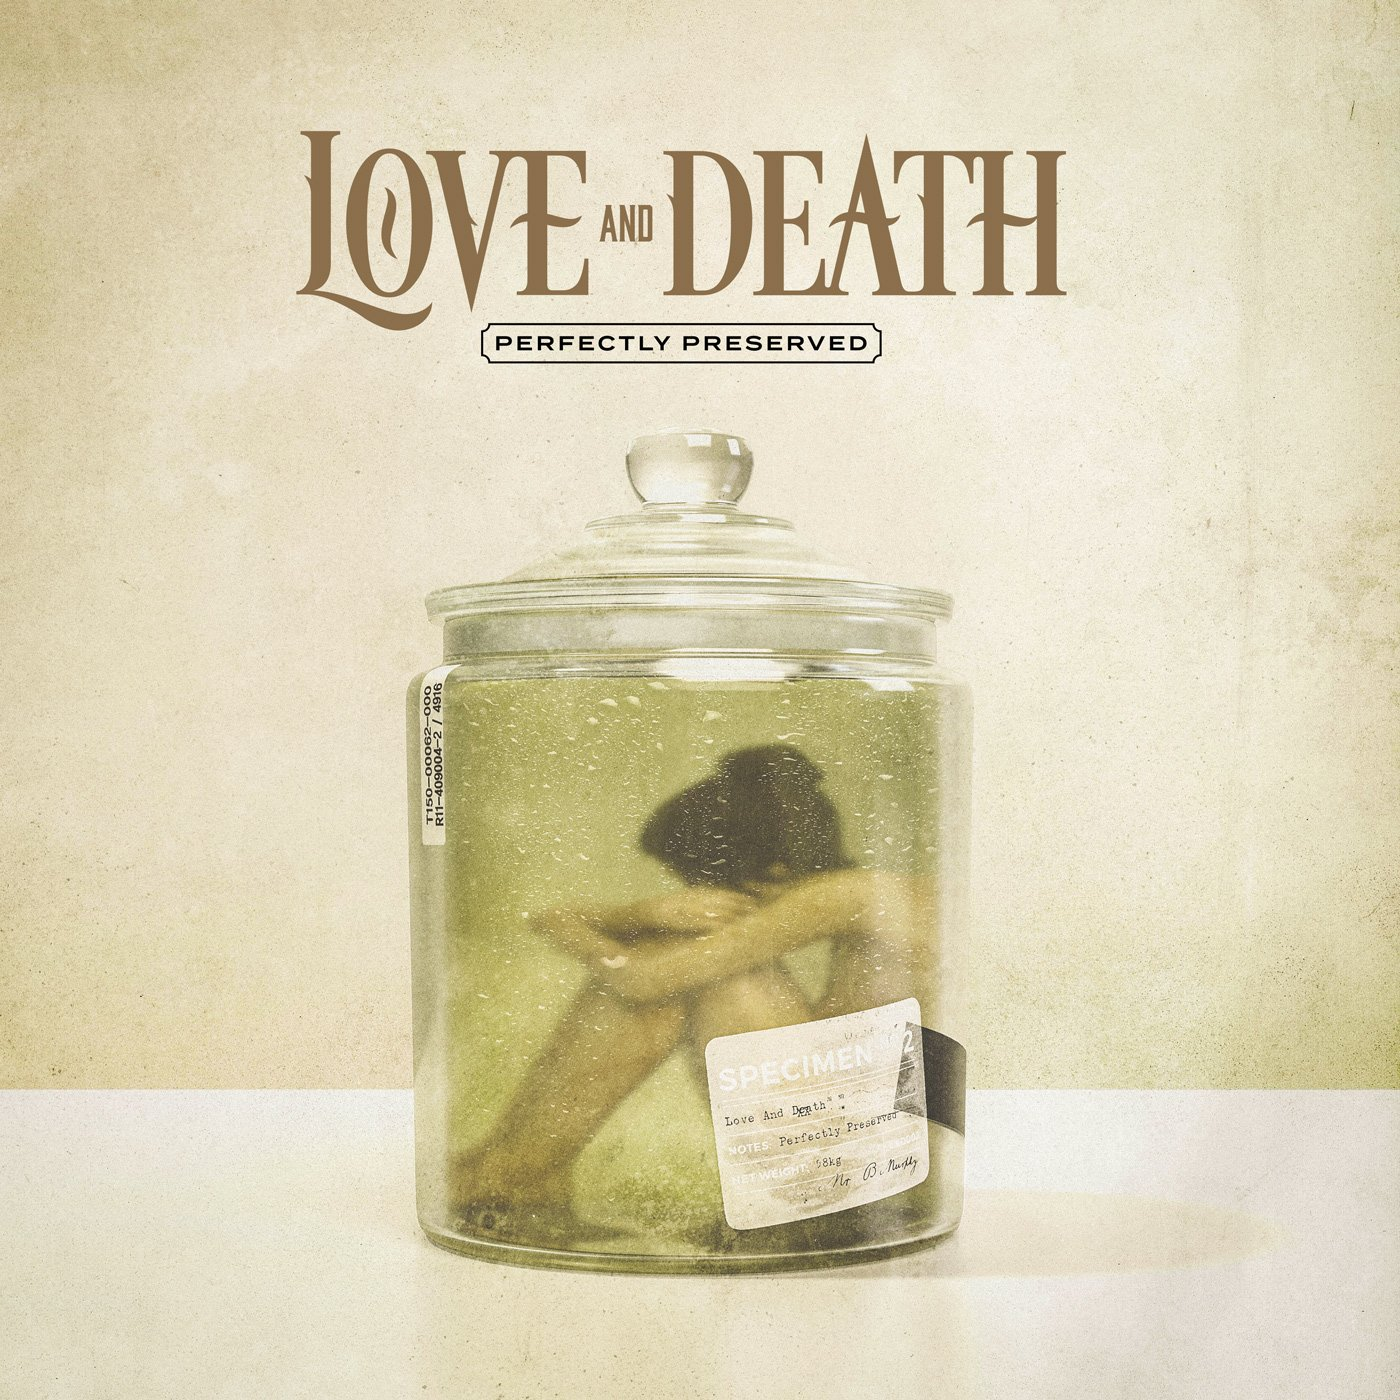 Love and Death Announce New Album Perfectly Preserved - Love and Death Release Highly Anticipated Perfectly Preserved Album